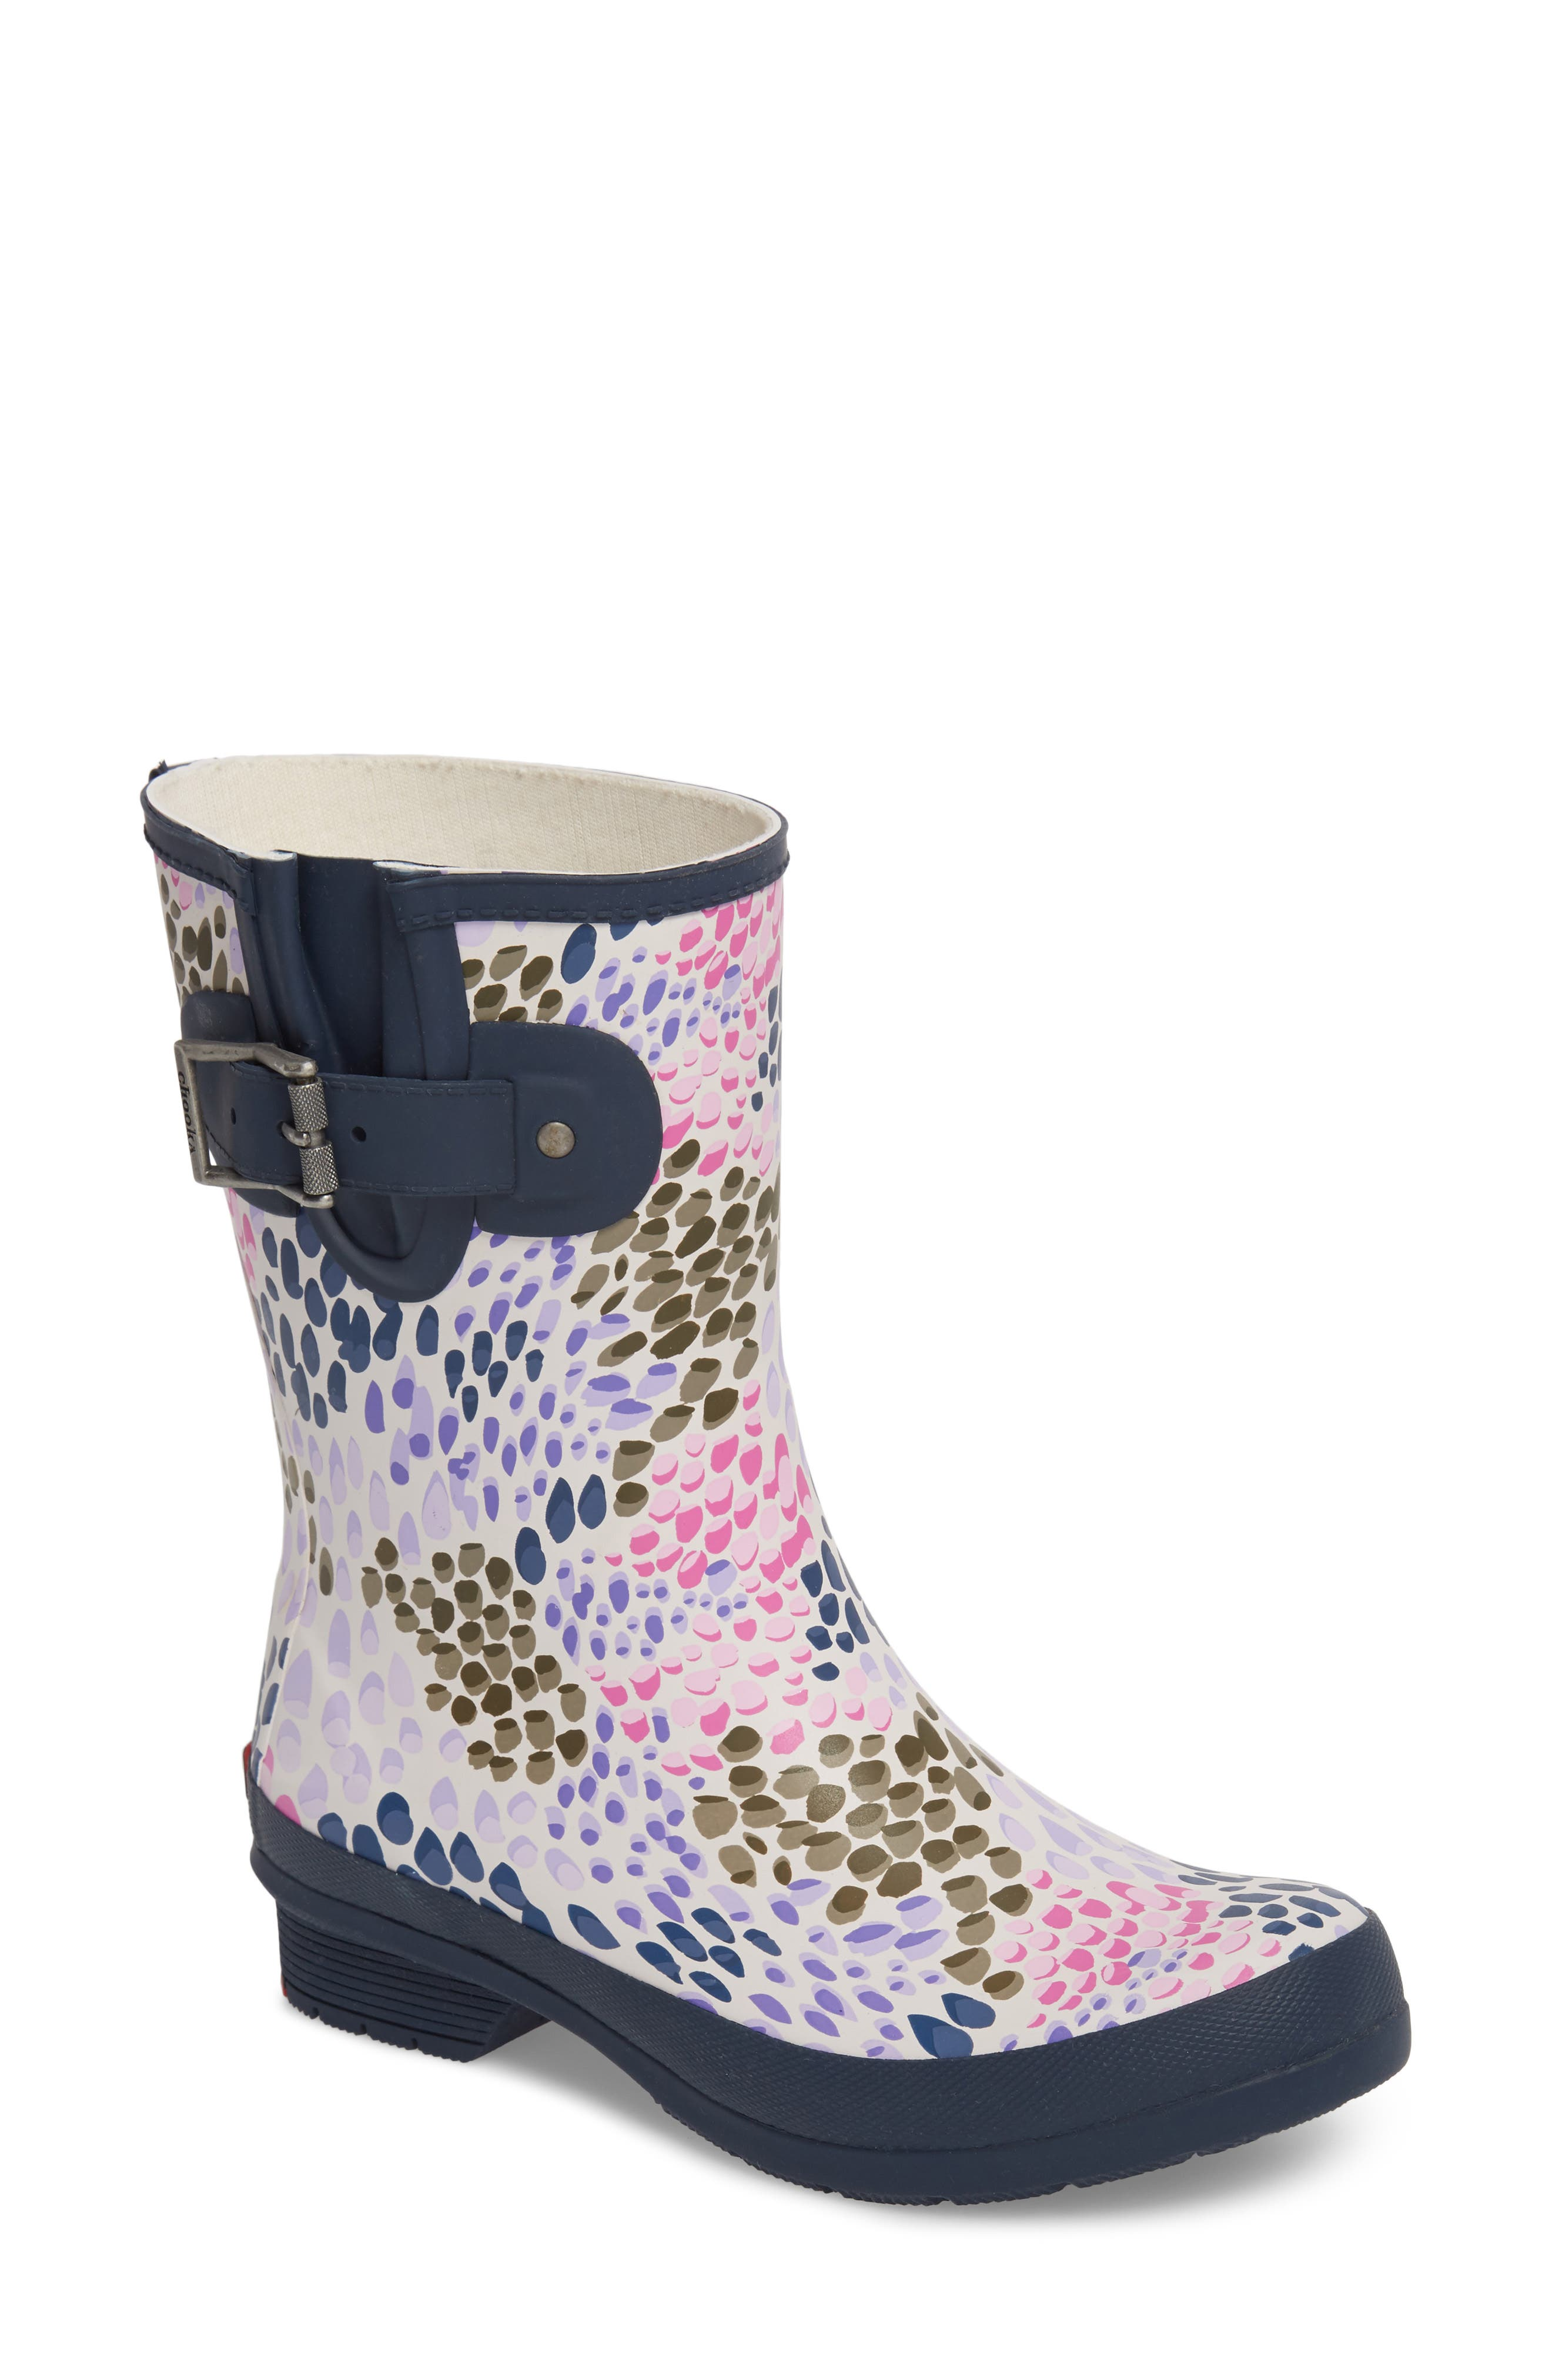 Tillie Mid Rain Boot,                             Main thumbnail 1, color,                             NAVY